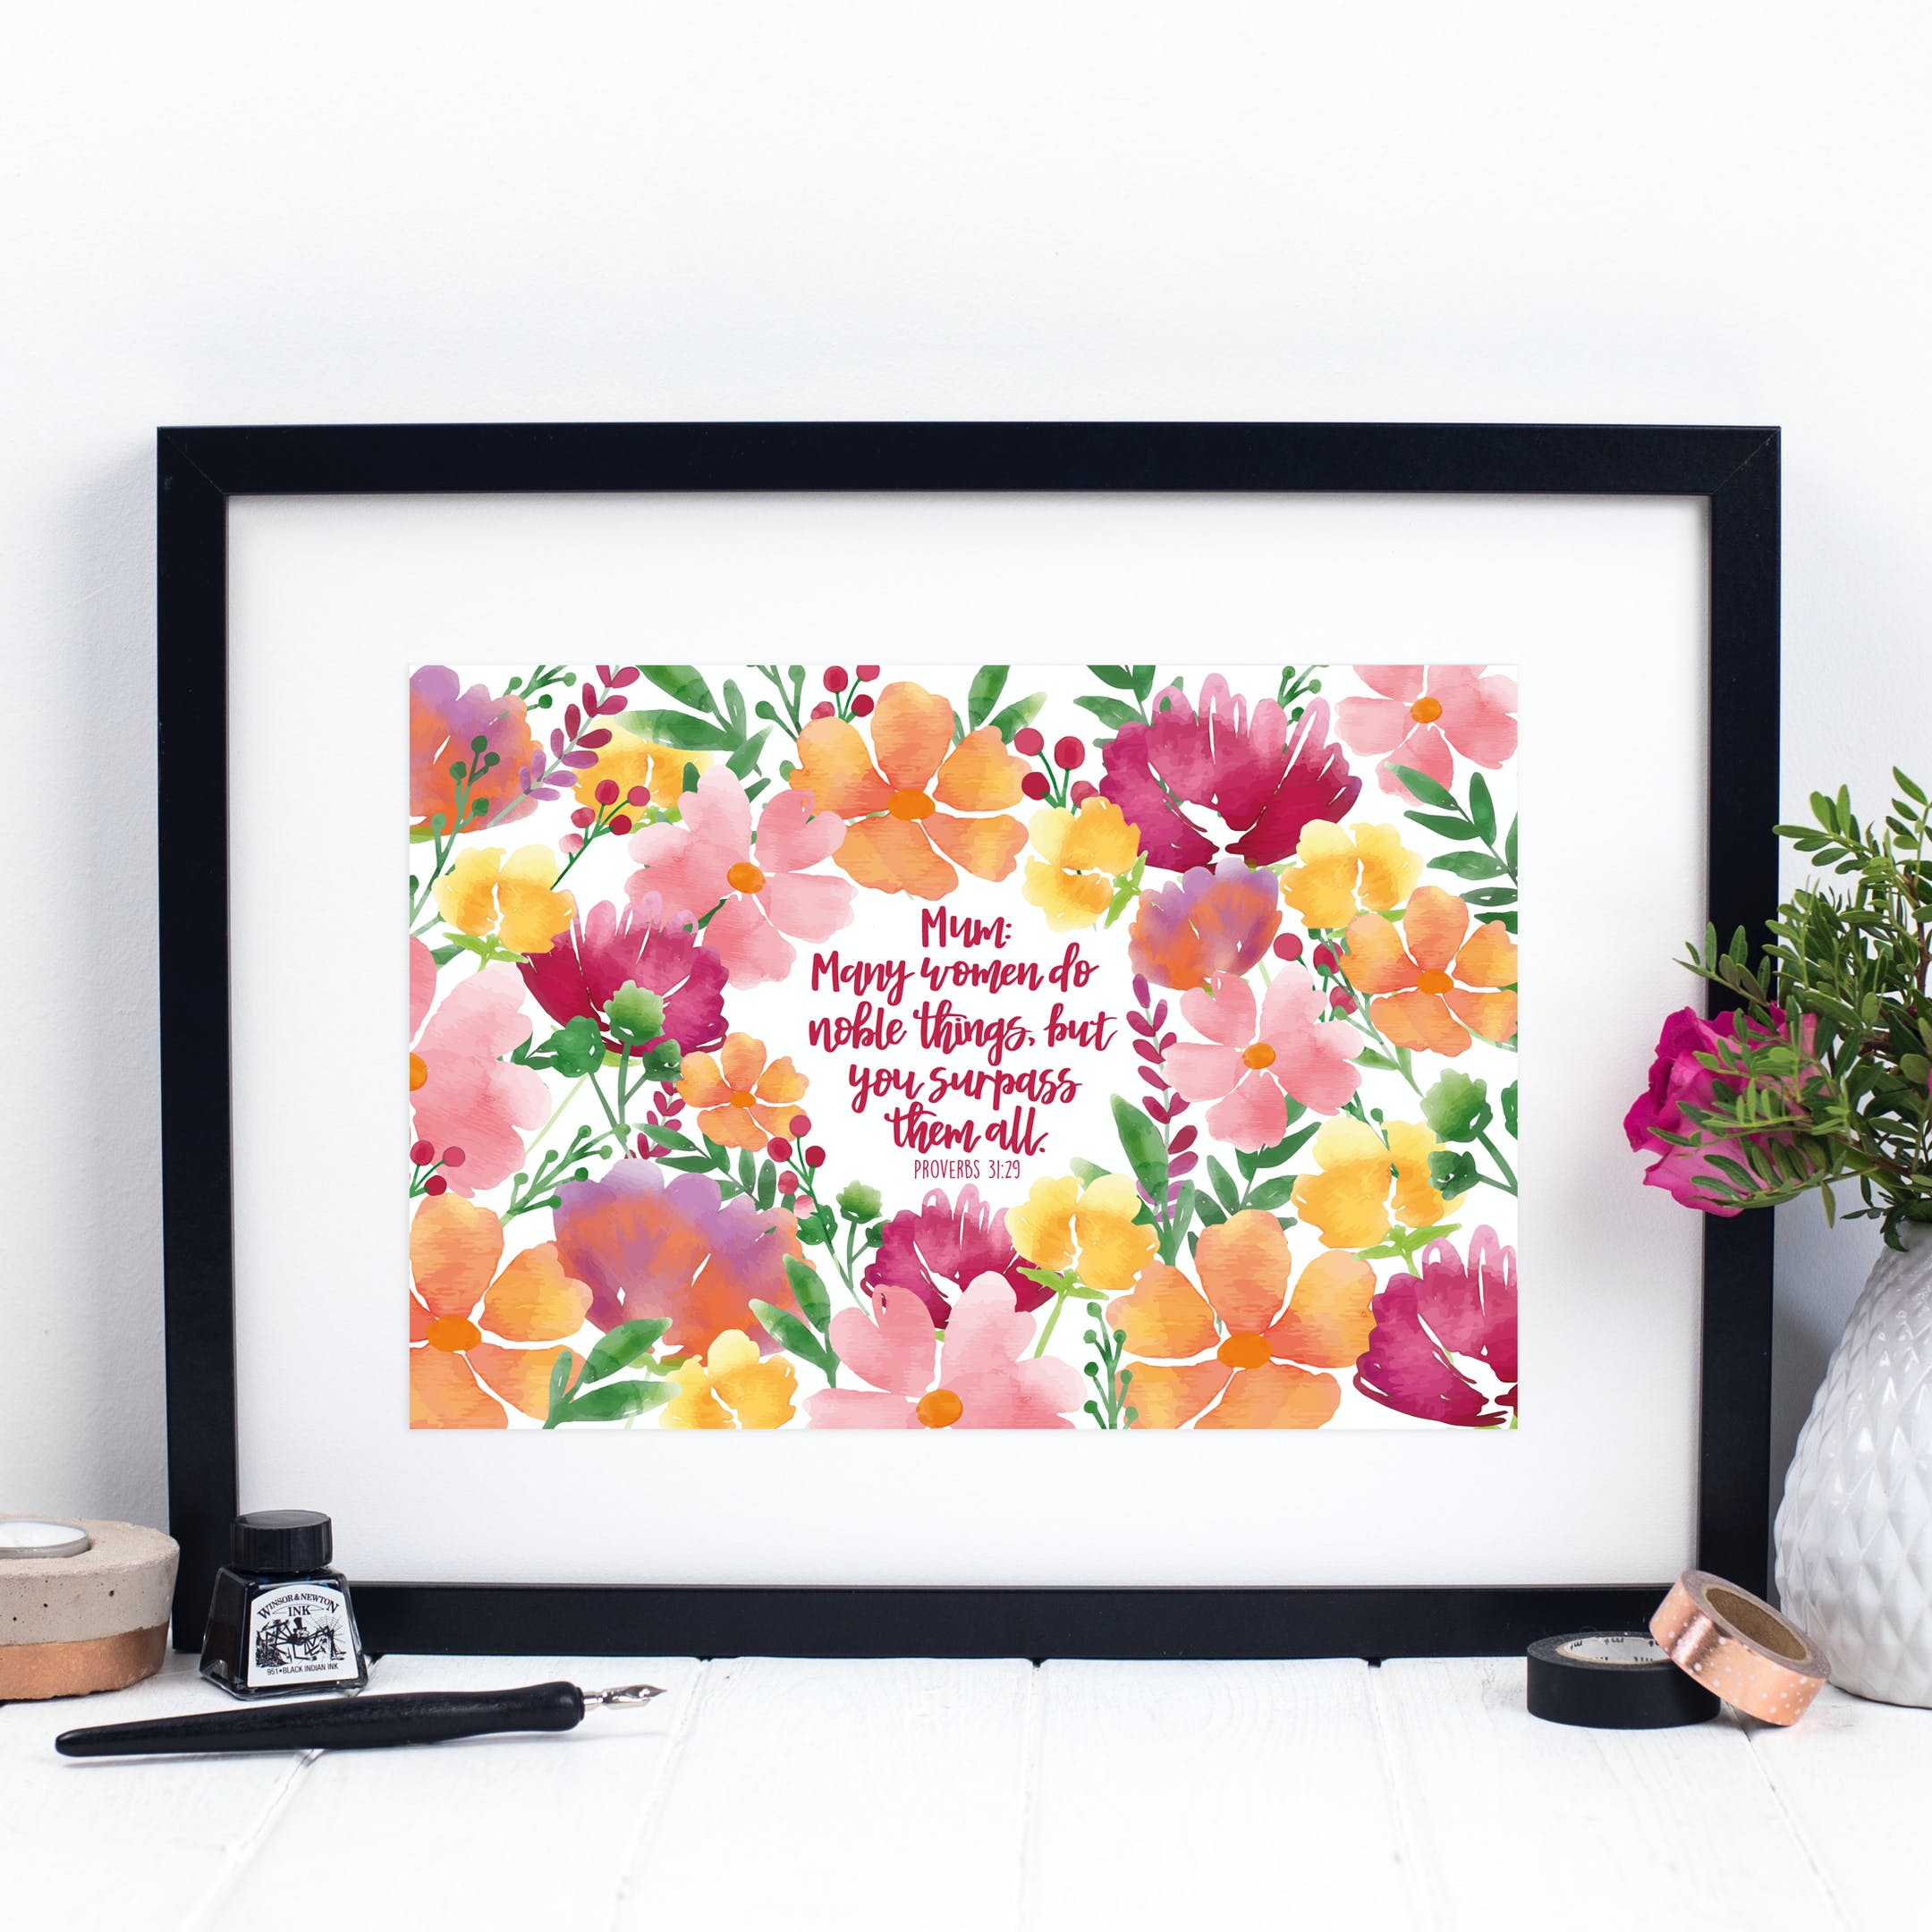 Many Women Do Noble Things Print - Proverbs 31:29 - Izzy and Pop